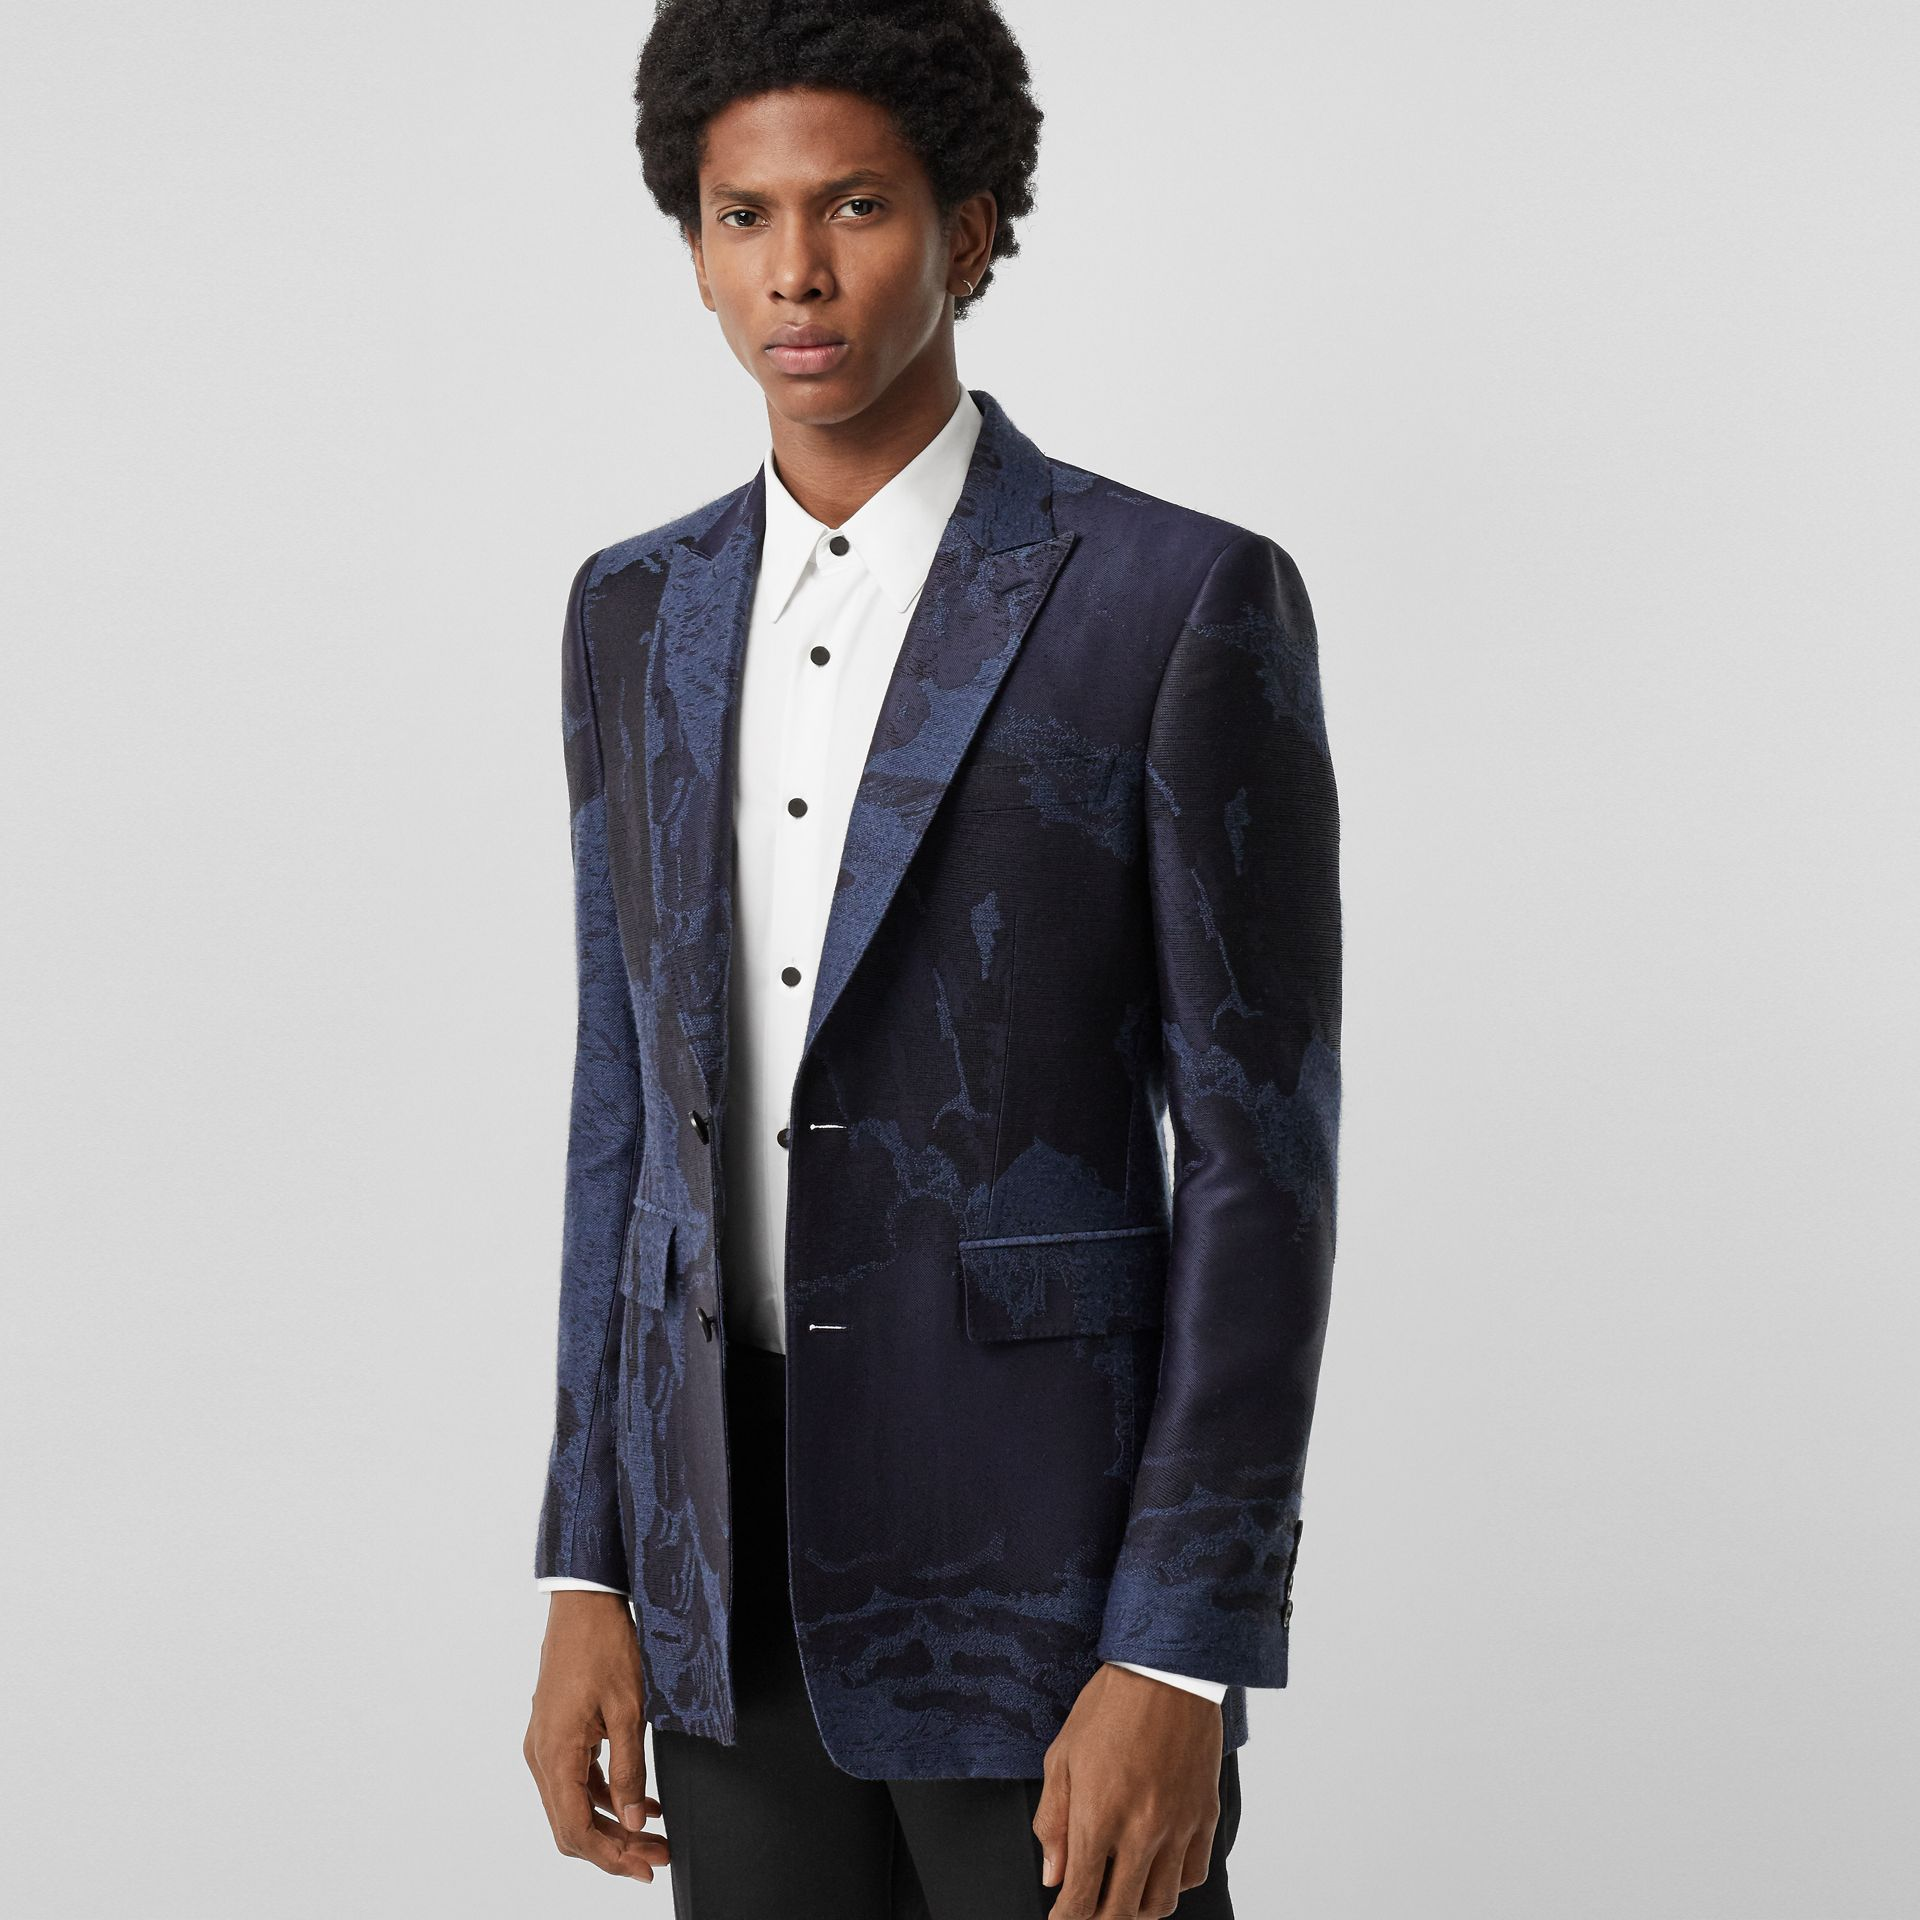 Classic Fit Dreamscape Wool Blend Tailored Jacket in Midnight Blue - Men | Burberry Canada - gallery image 5